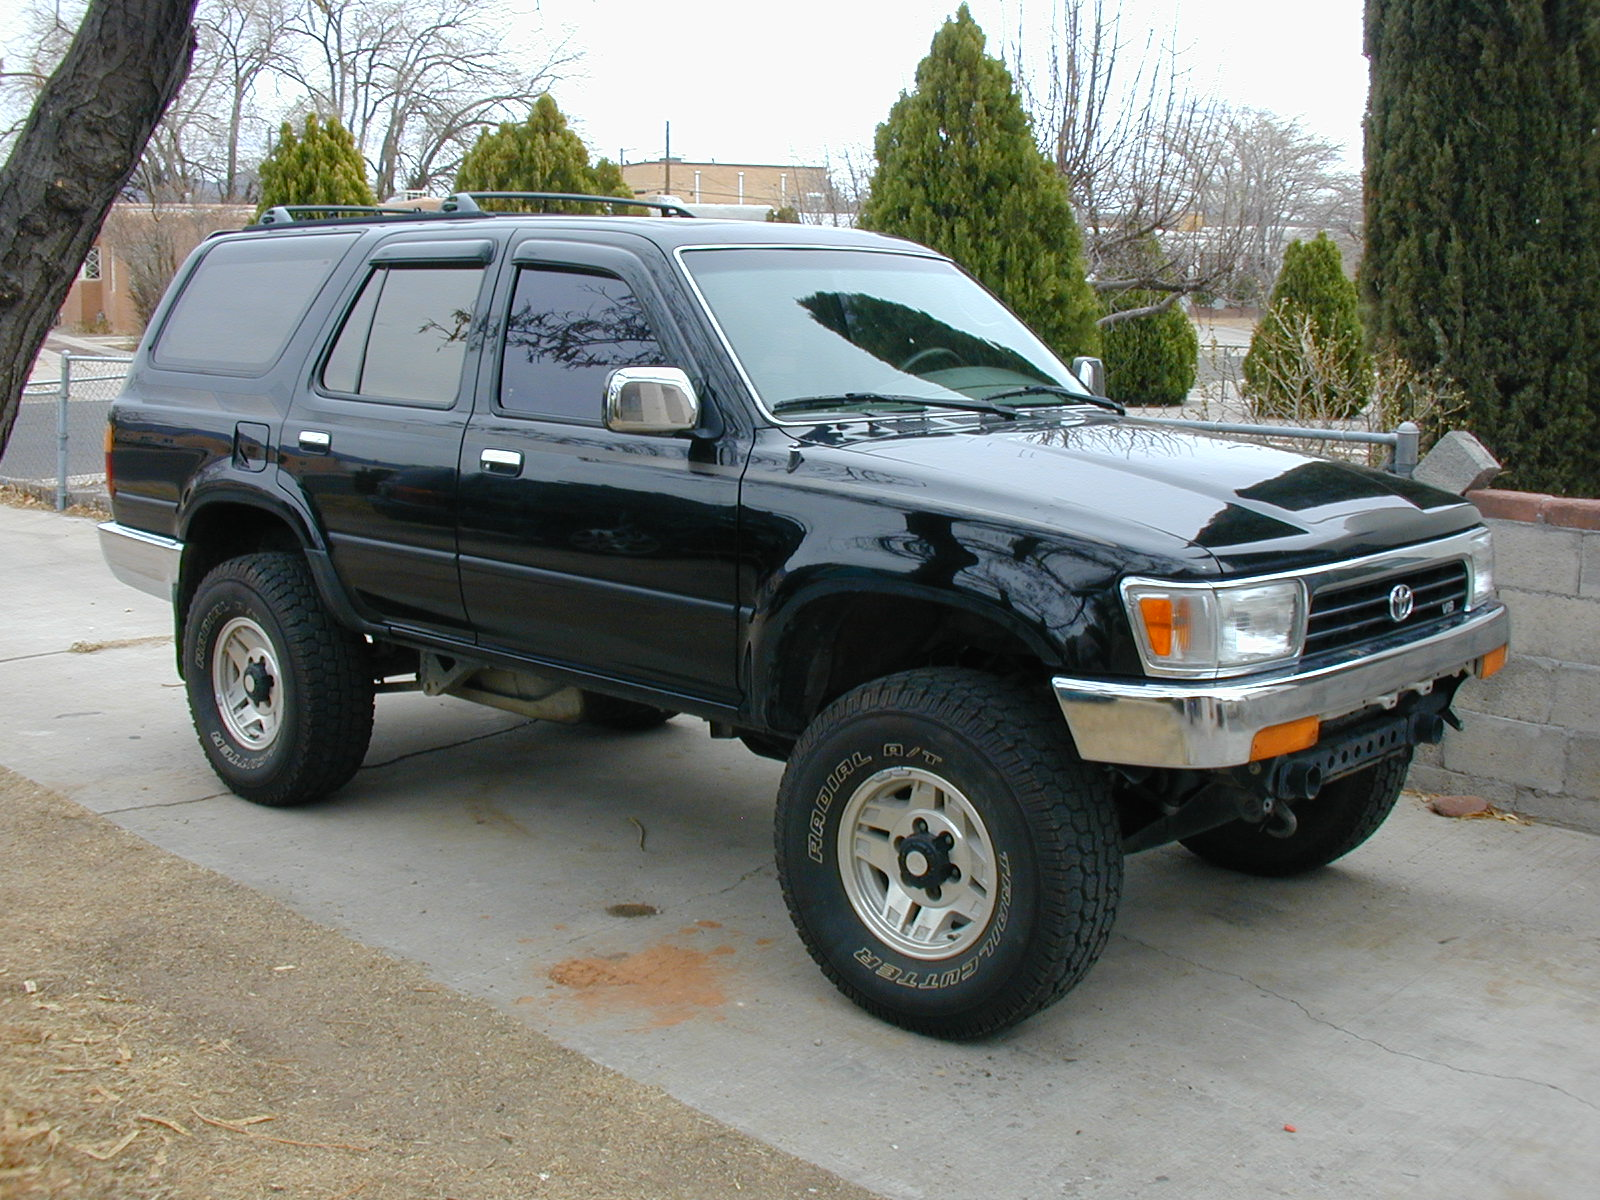 04 Tacoma Lifted >> 1st gen wheels on 2nd gen 4-runner - YotaTech Forums